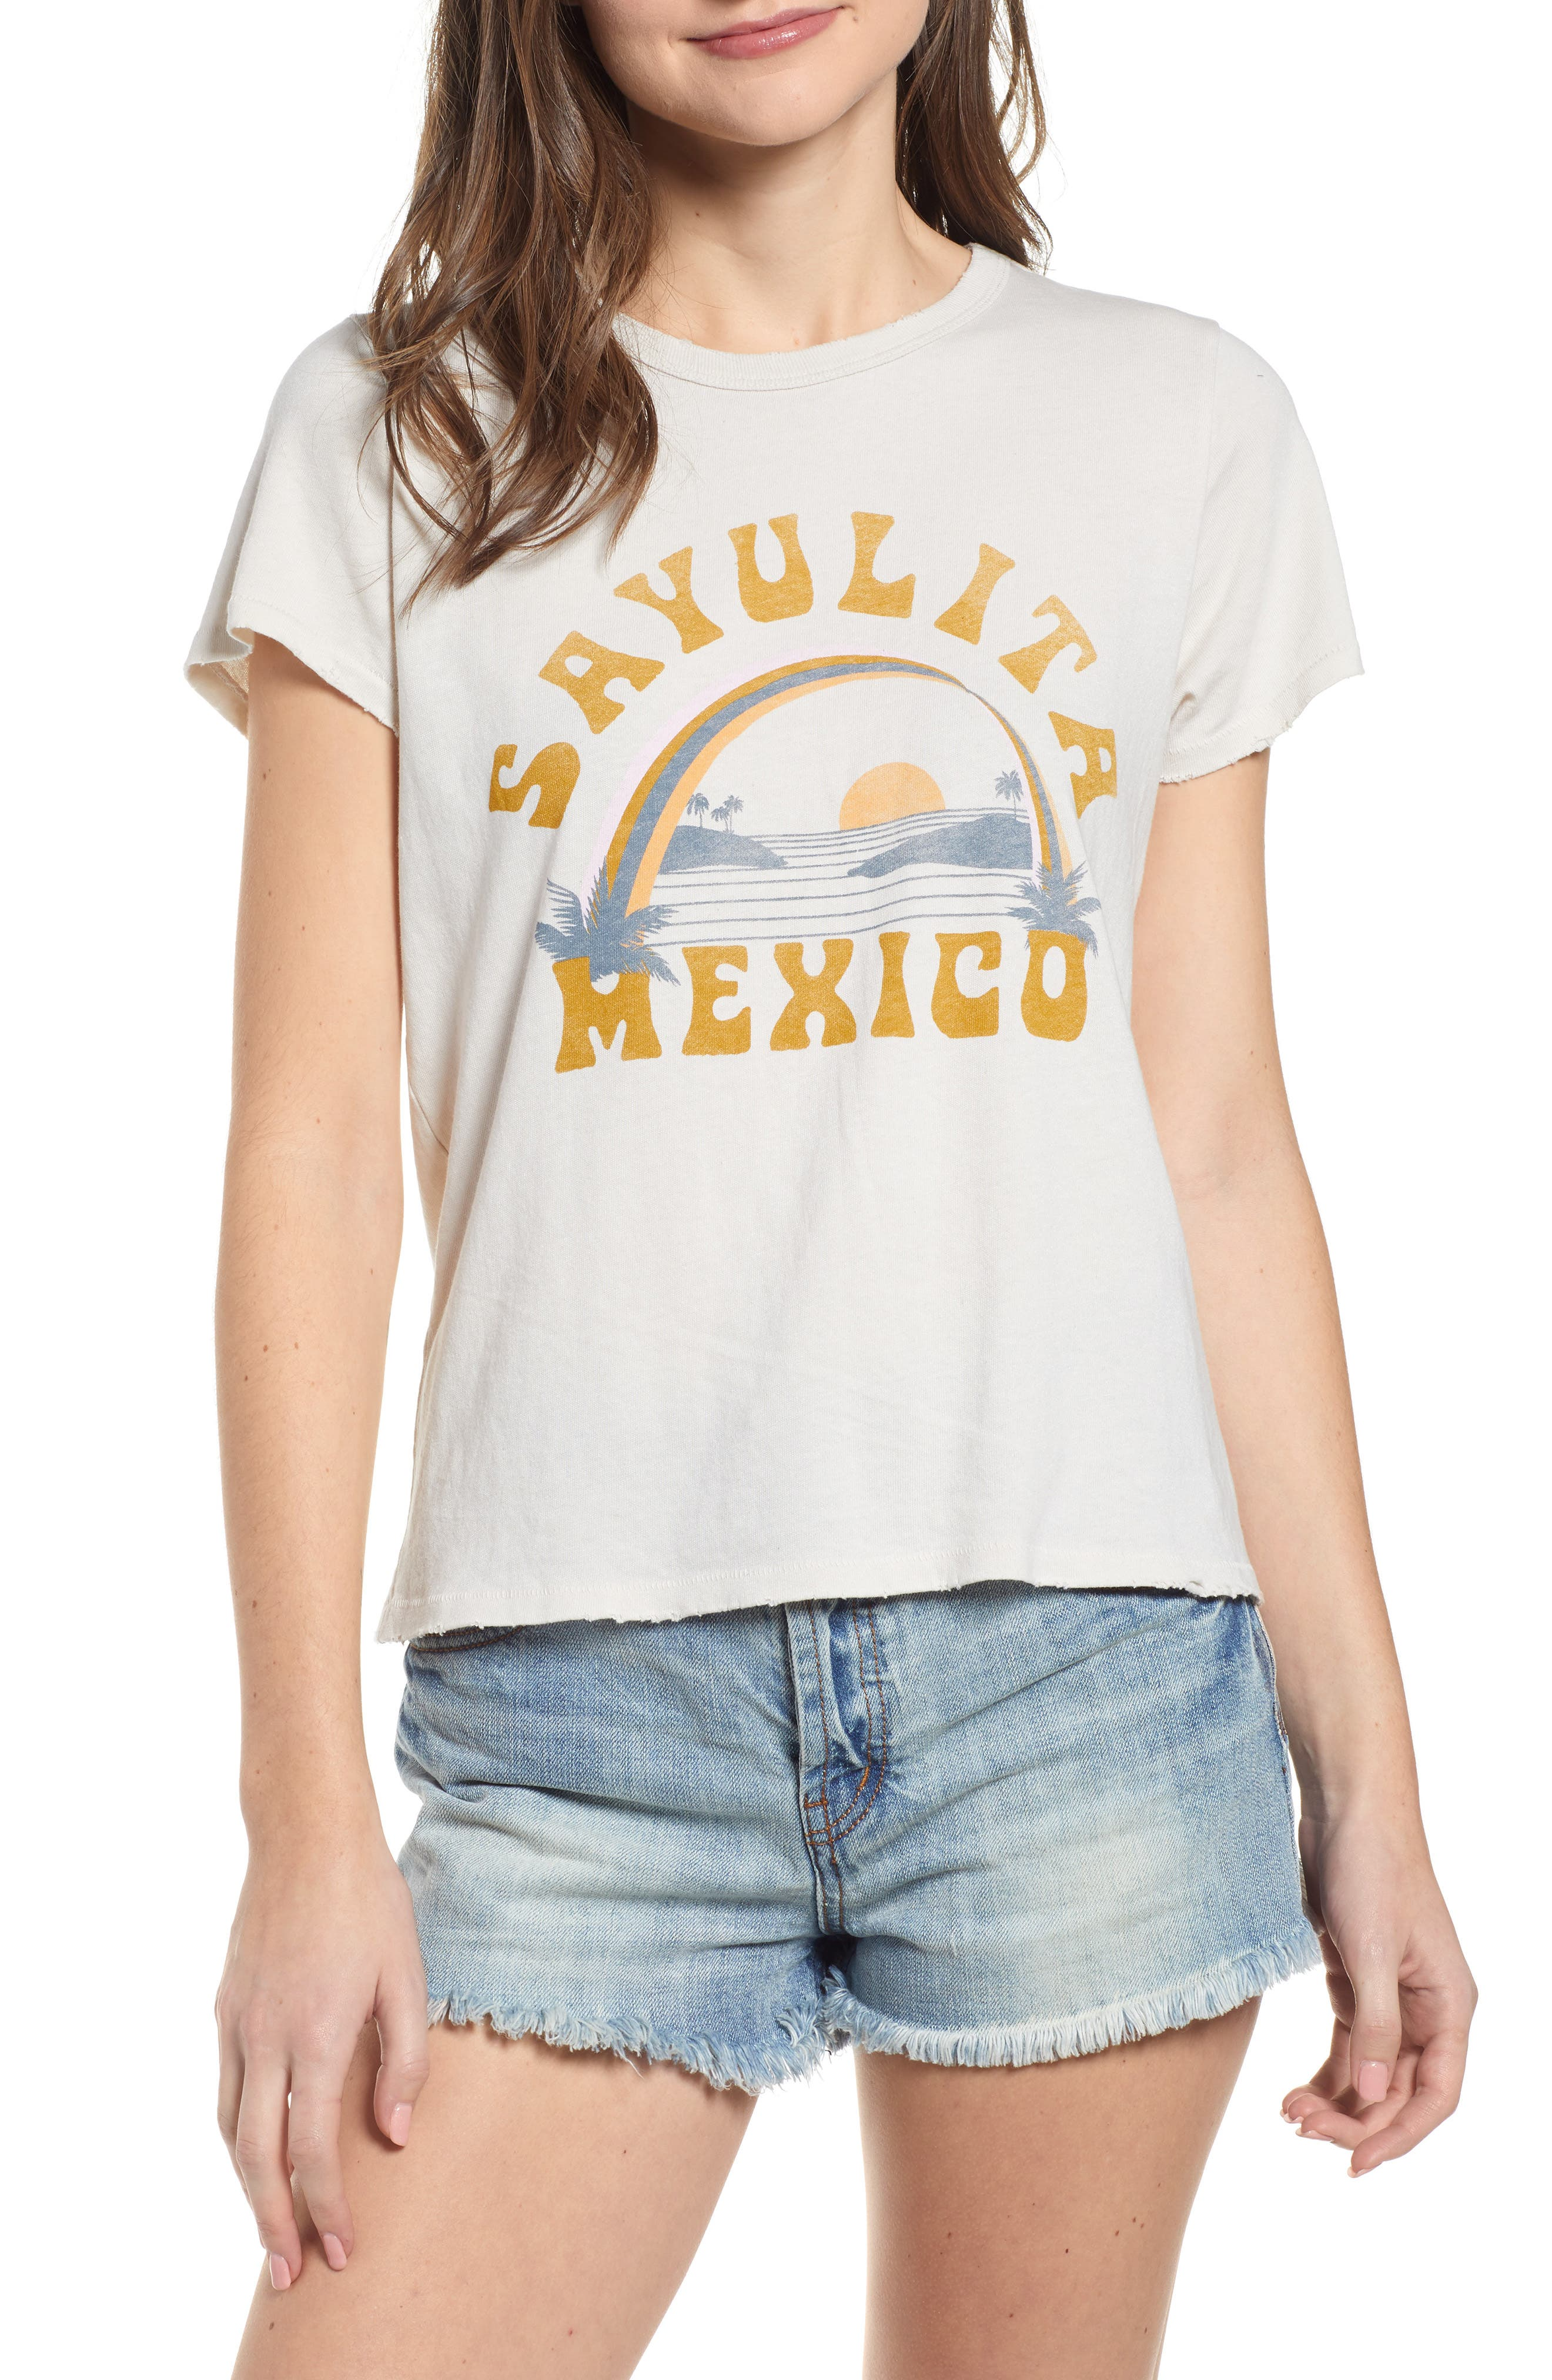 Sayulita Mexico Graphic Tee in Birch